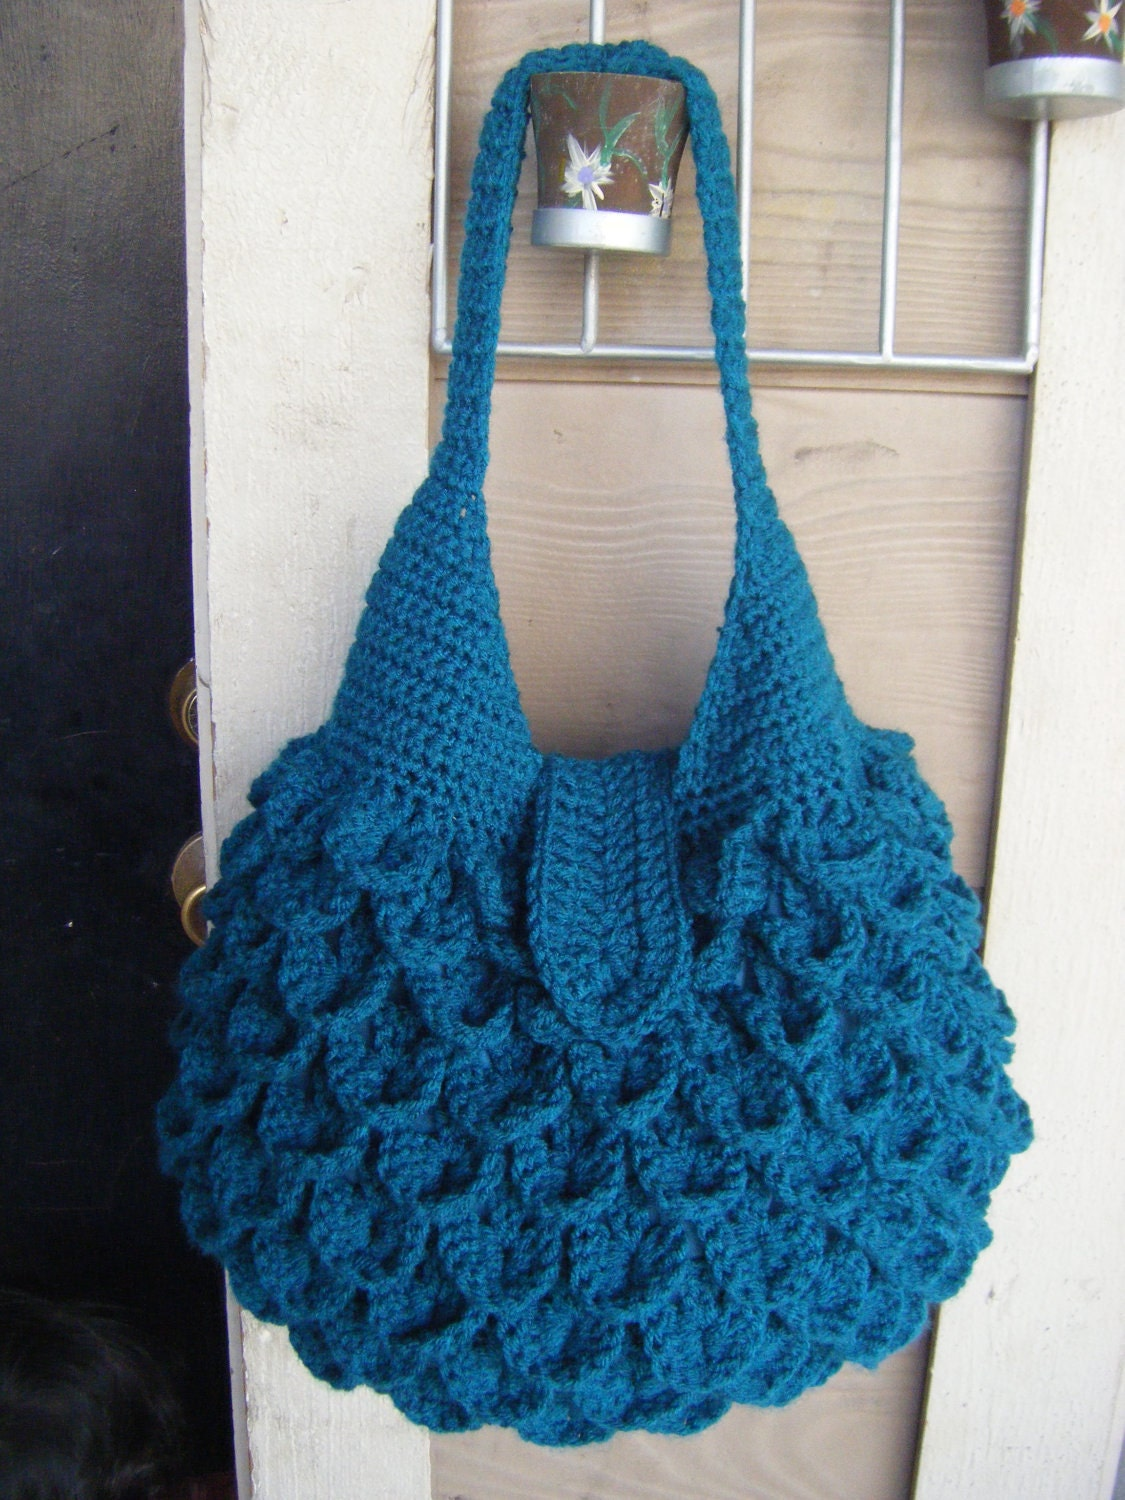 Crochet Handbags : Crochet Crocodile Bag Pattern PERMISSION SELL by NatalieSpot